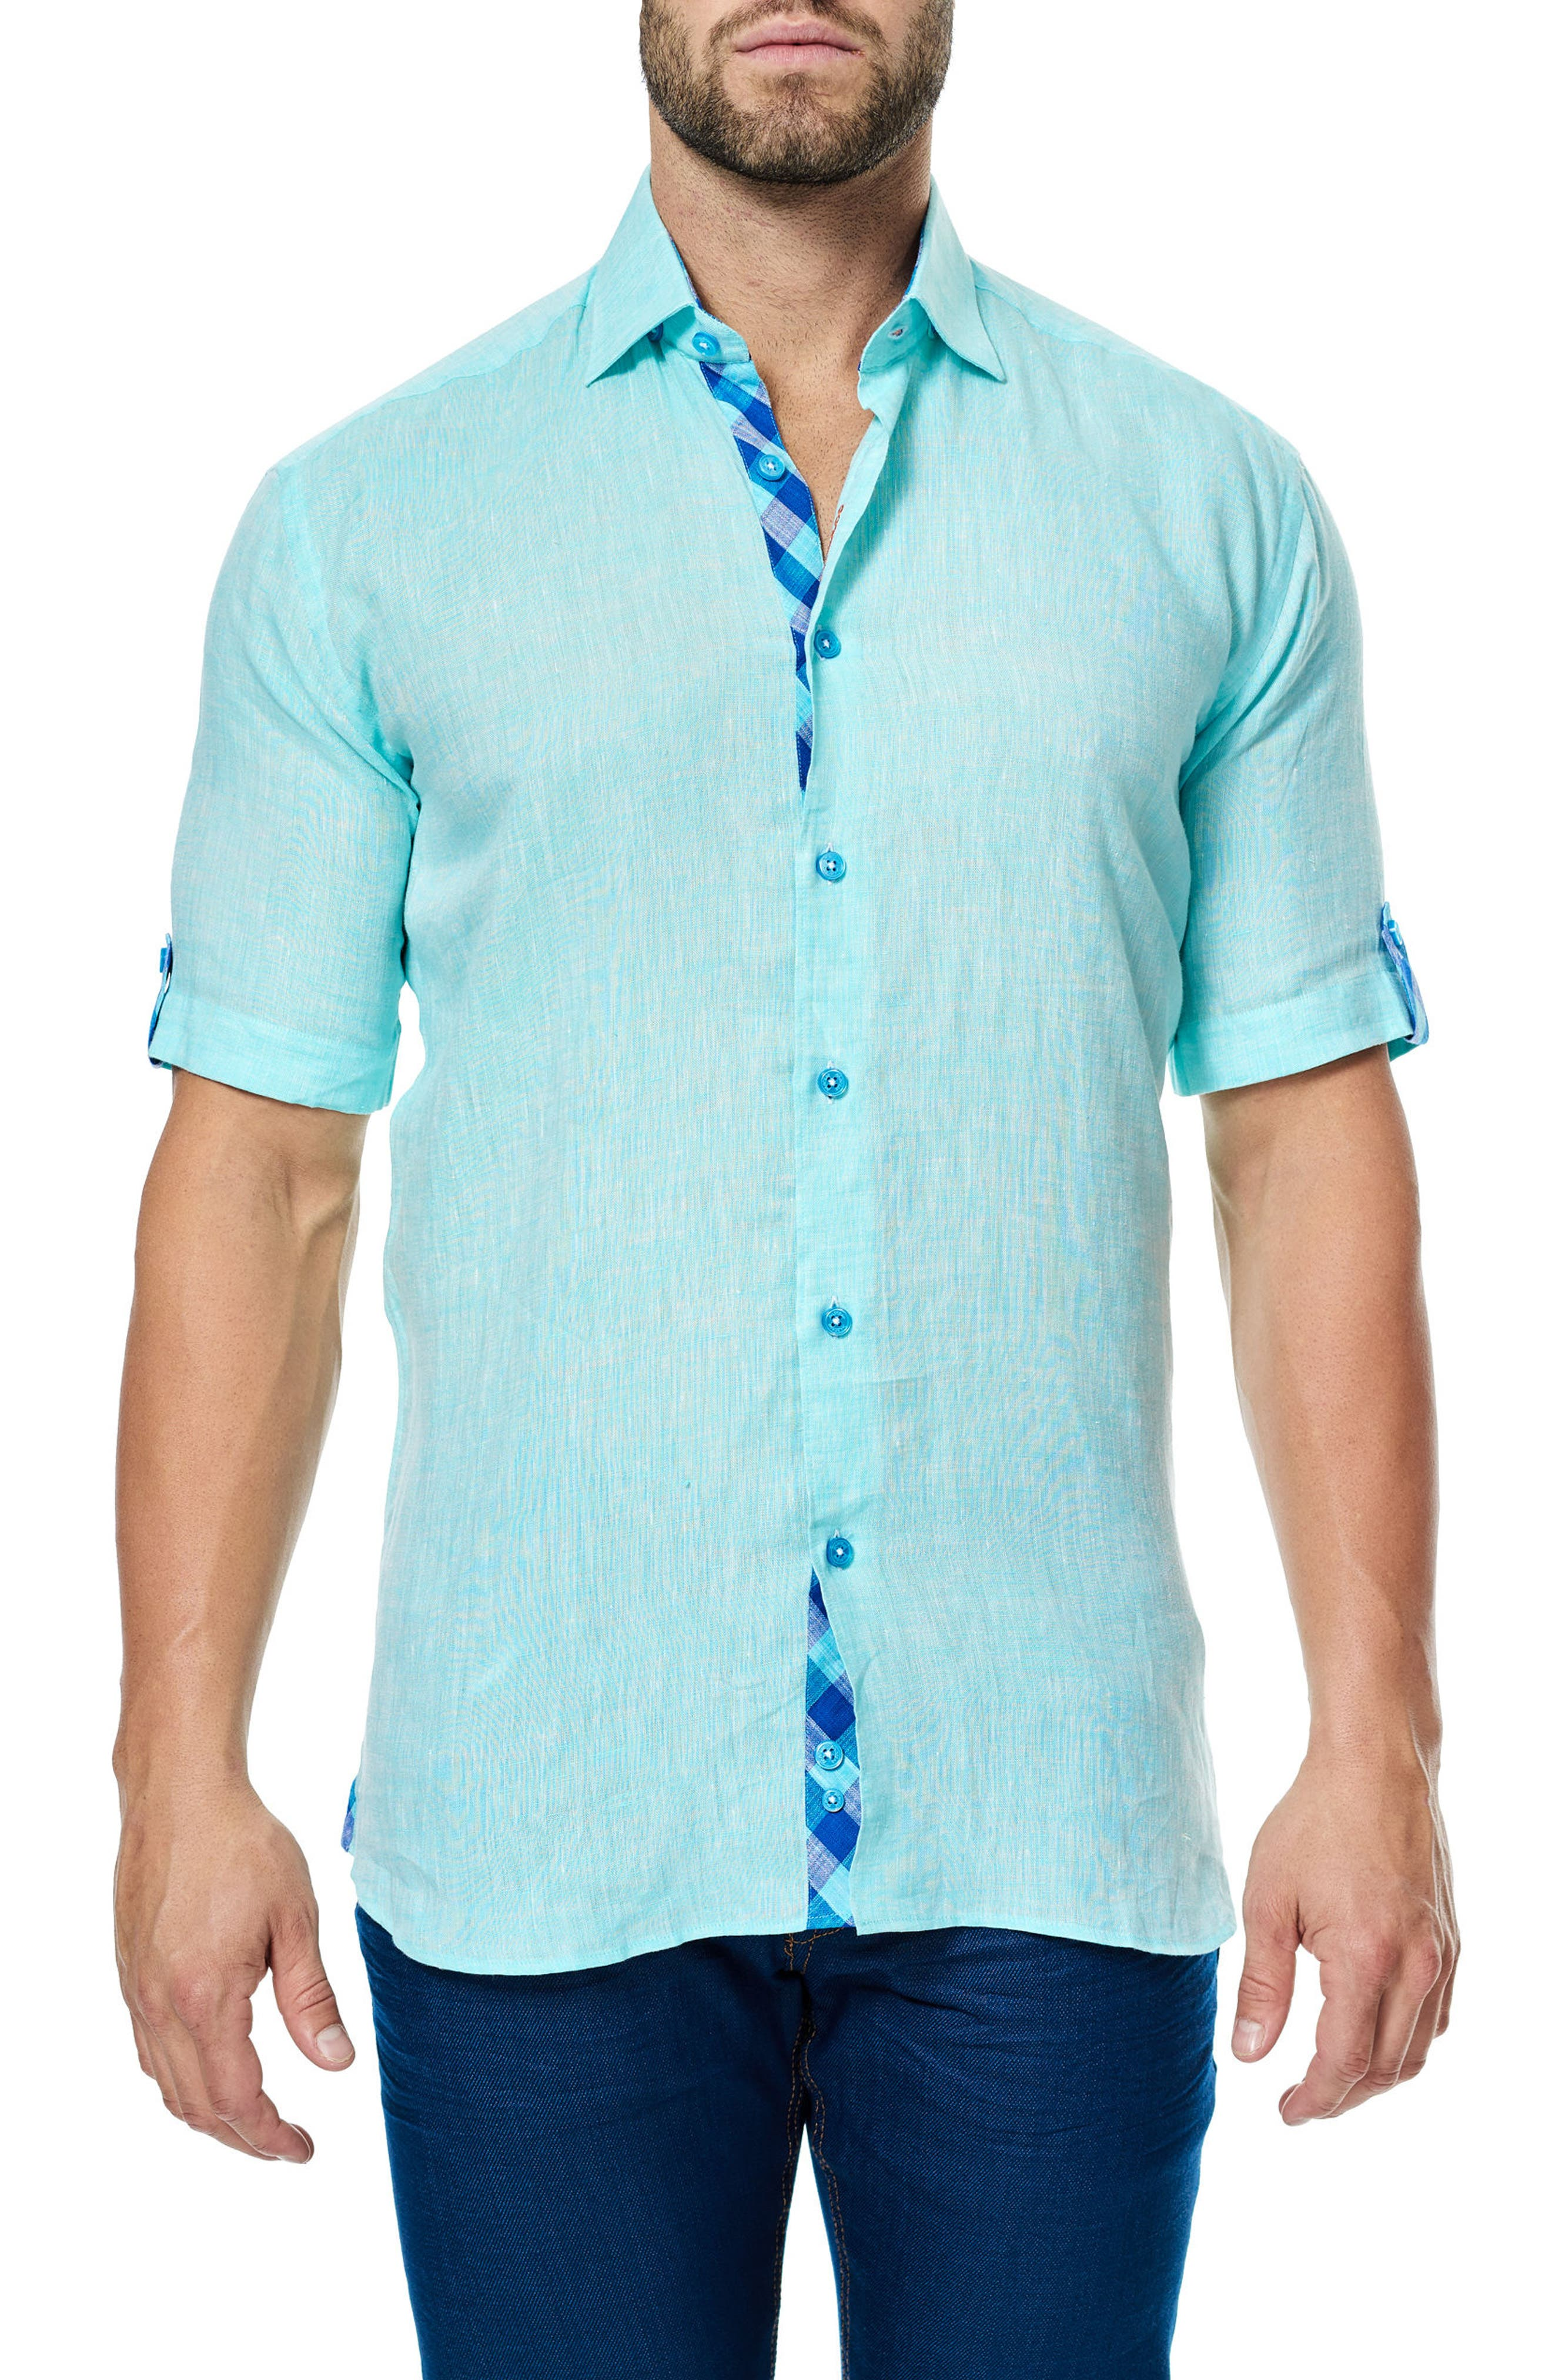 Fresh Sport Shirt,                             Main thumbnail 1, color,                             422